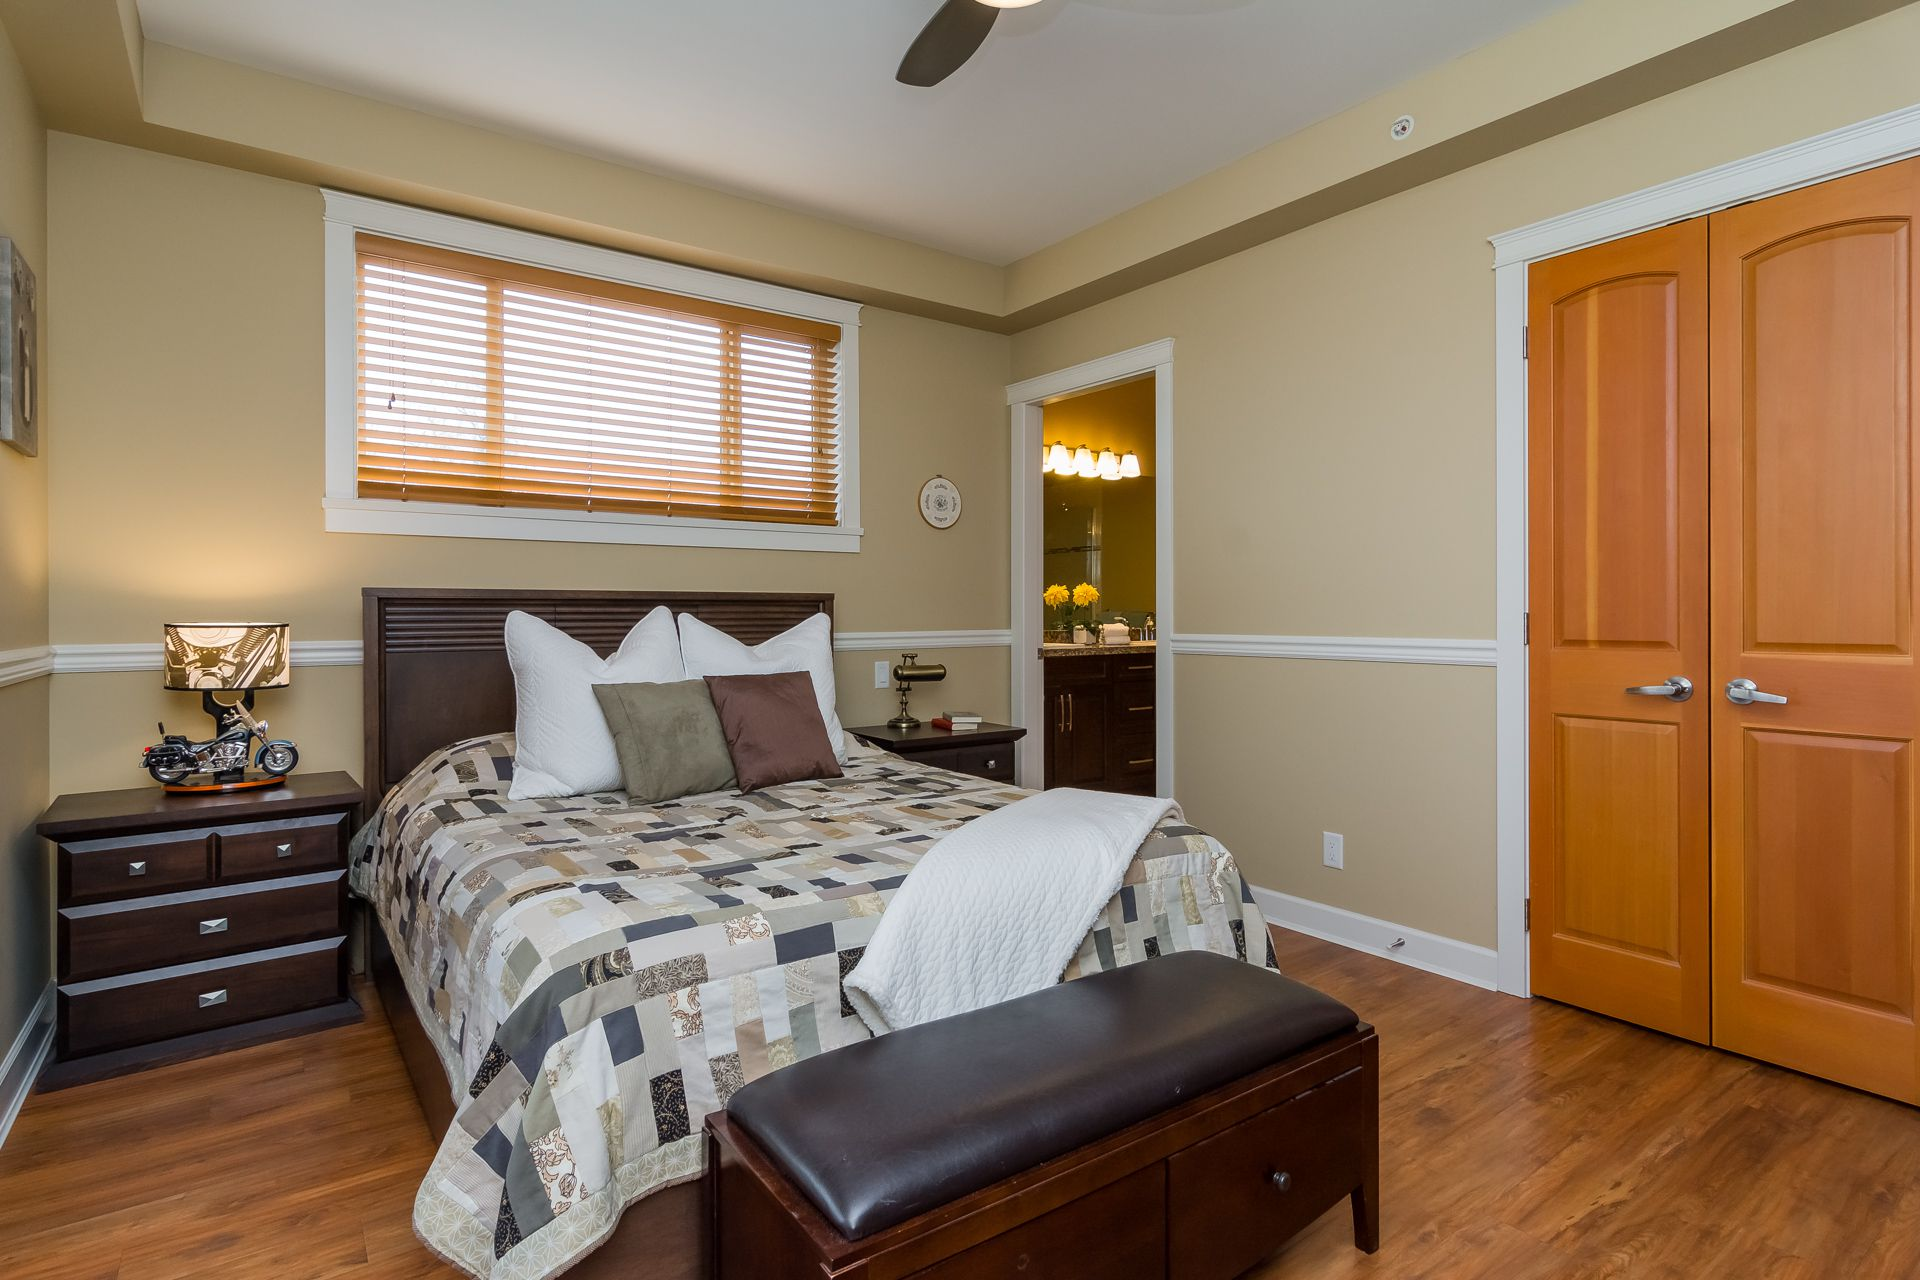 """Photo 22: Photos: 509 8258 207A Street in Langley: Willoughby Heights Condo for sale in """"YORKSON CREEK (BLG A)"""" : MLS®# R2221052"""